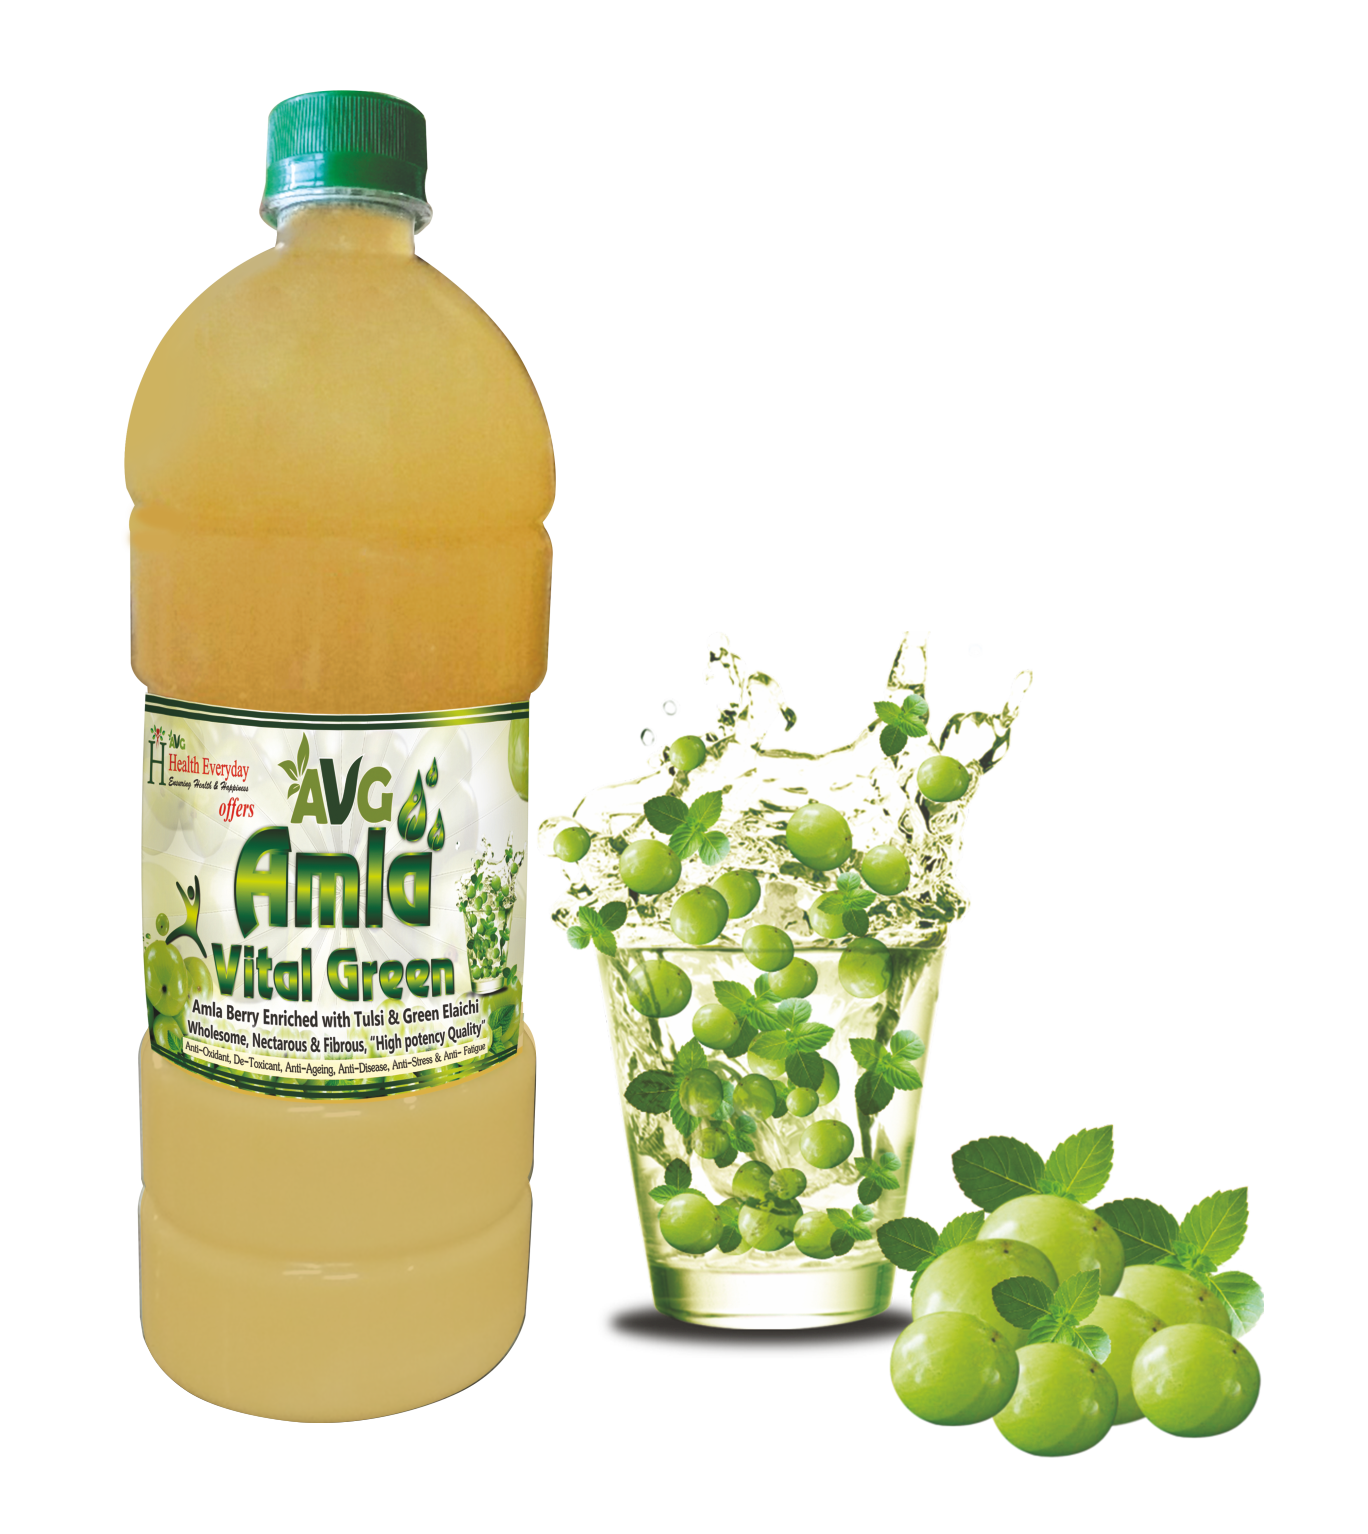 is amla juice safe for adults? - quora